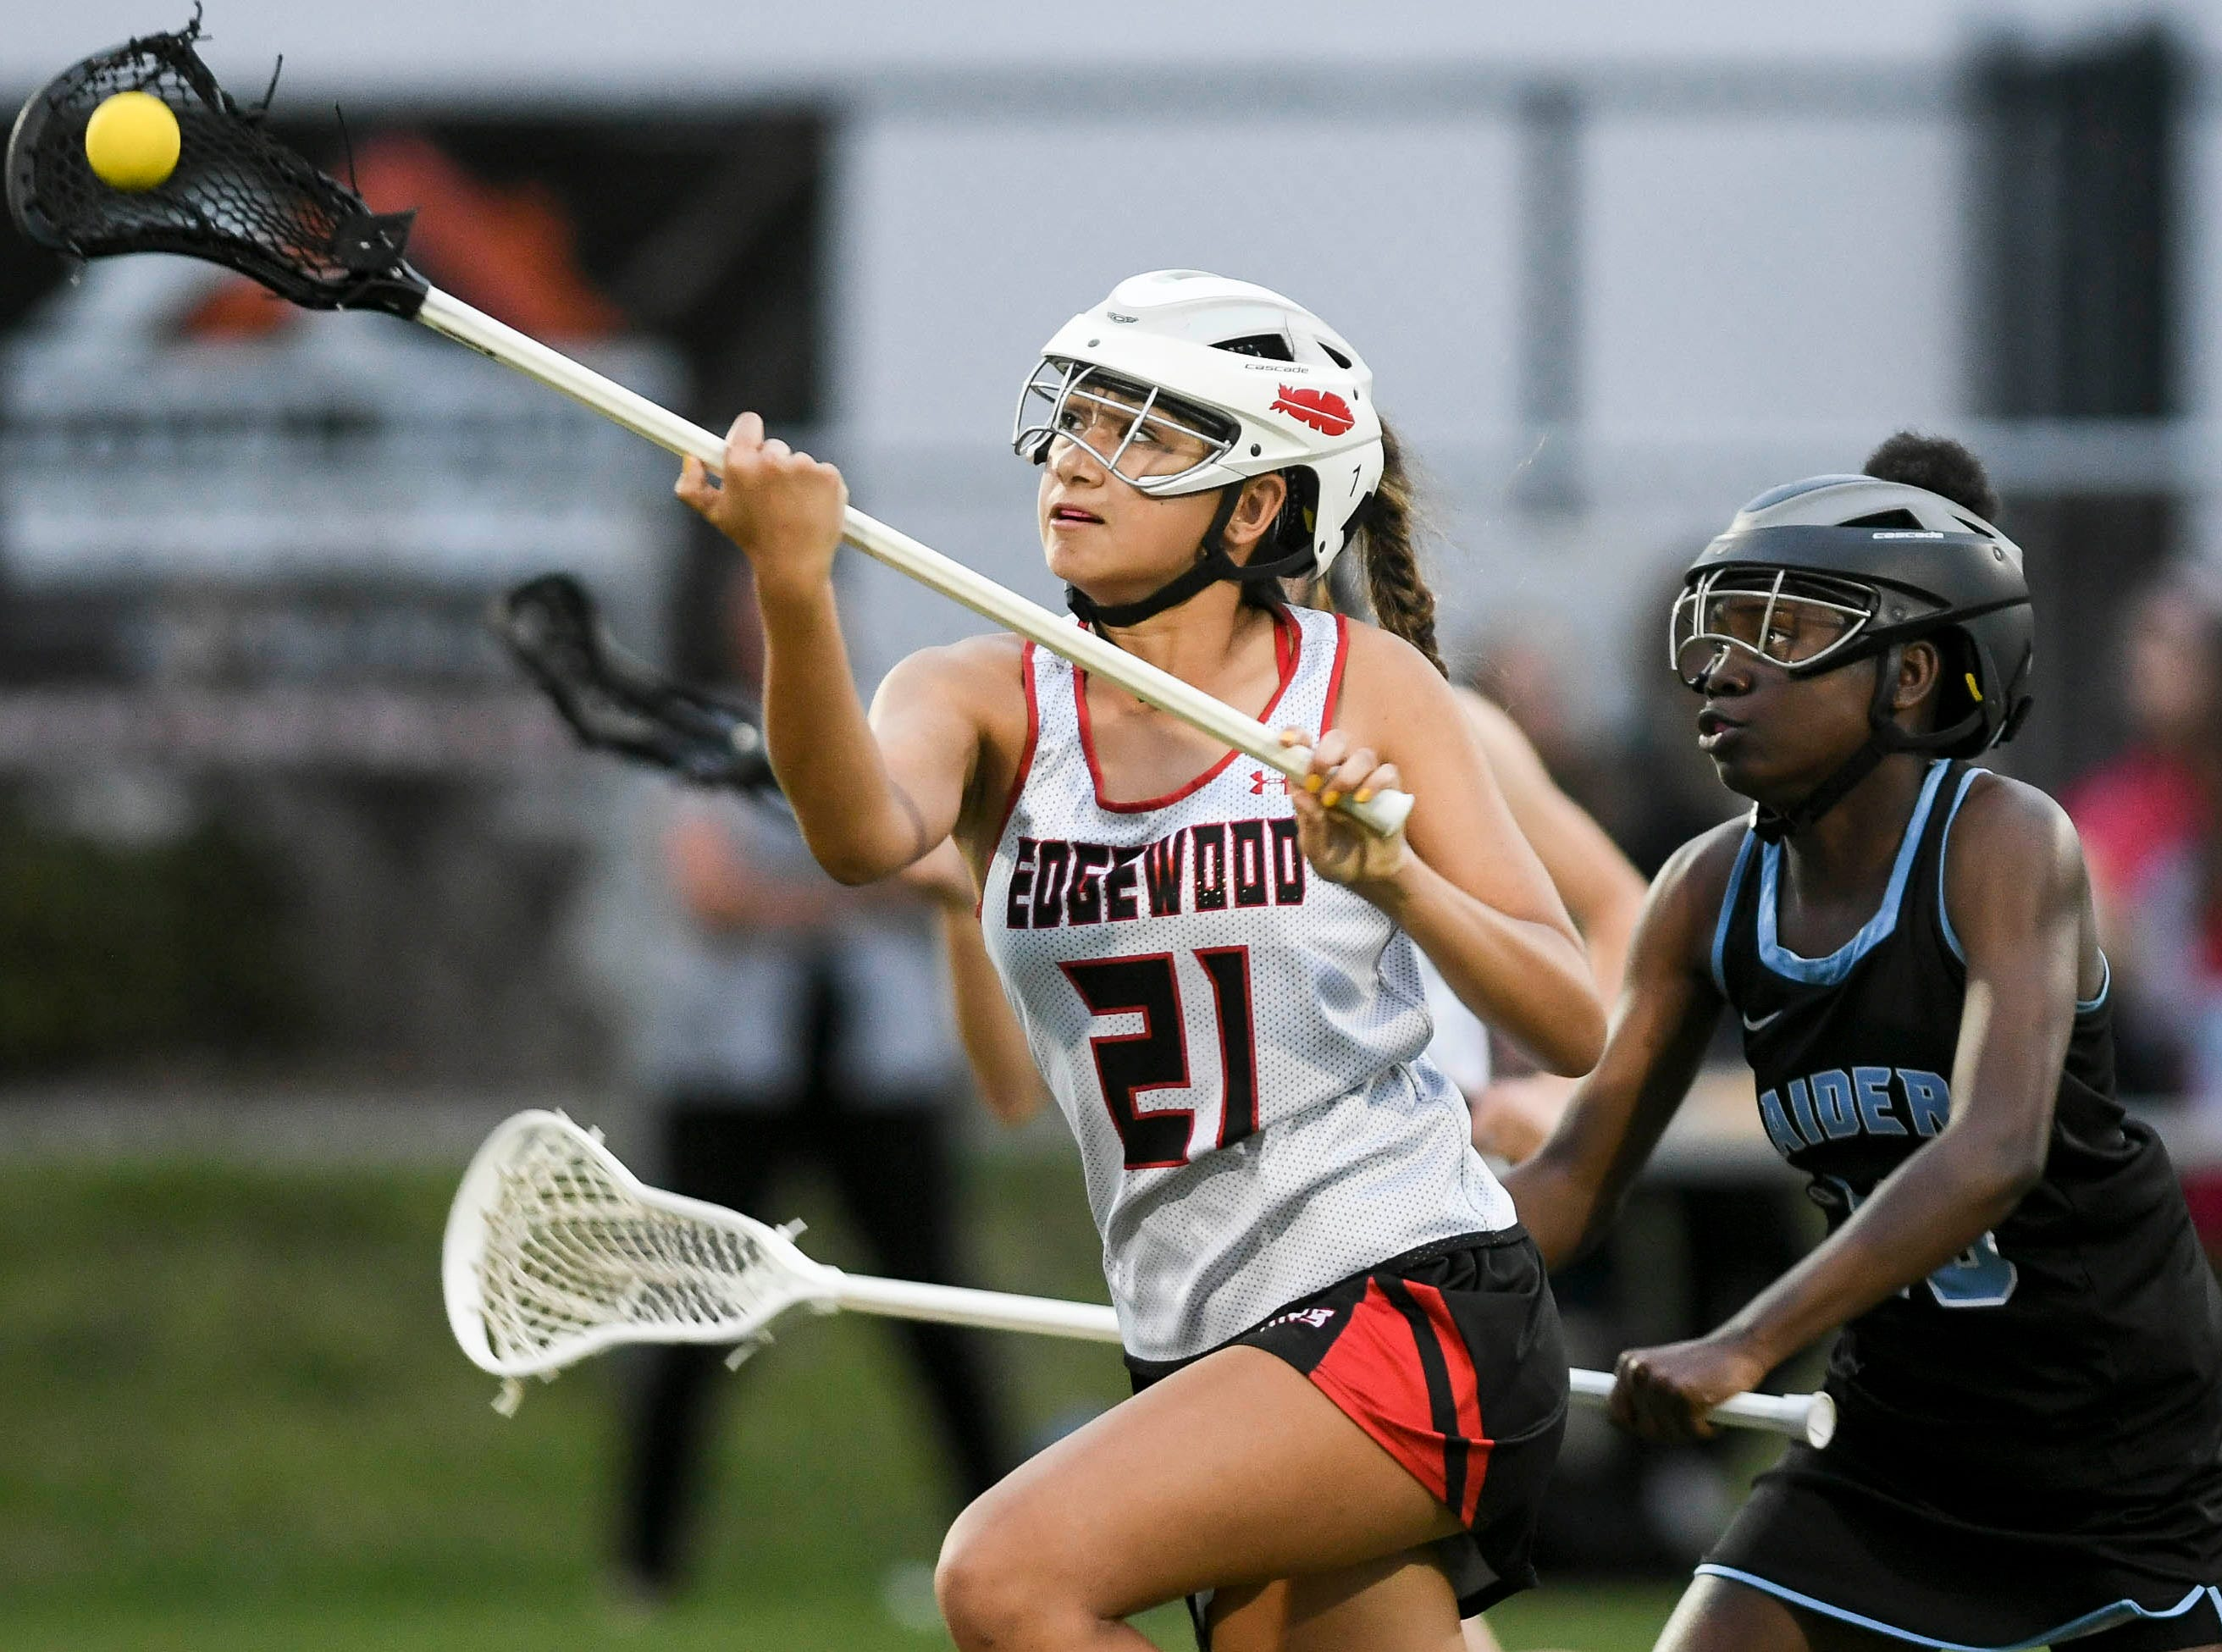 Edgewood's Jasmine Almeda controls the ball n front of Rockledge's Raven Kearse Tuesday's game.